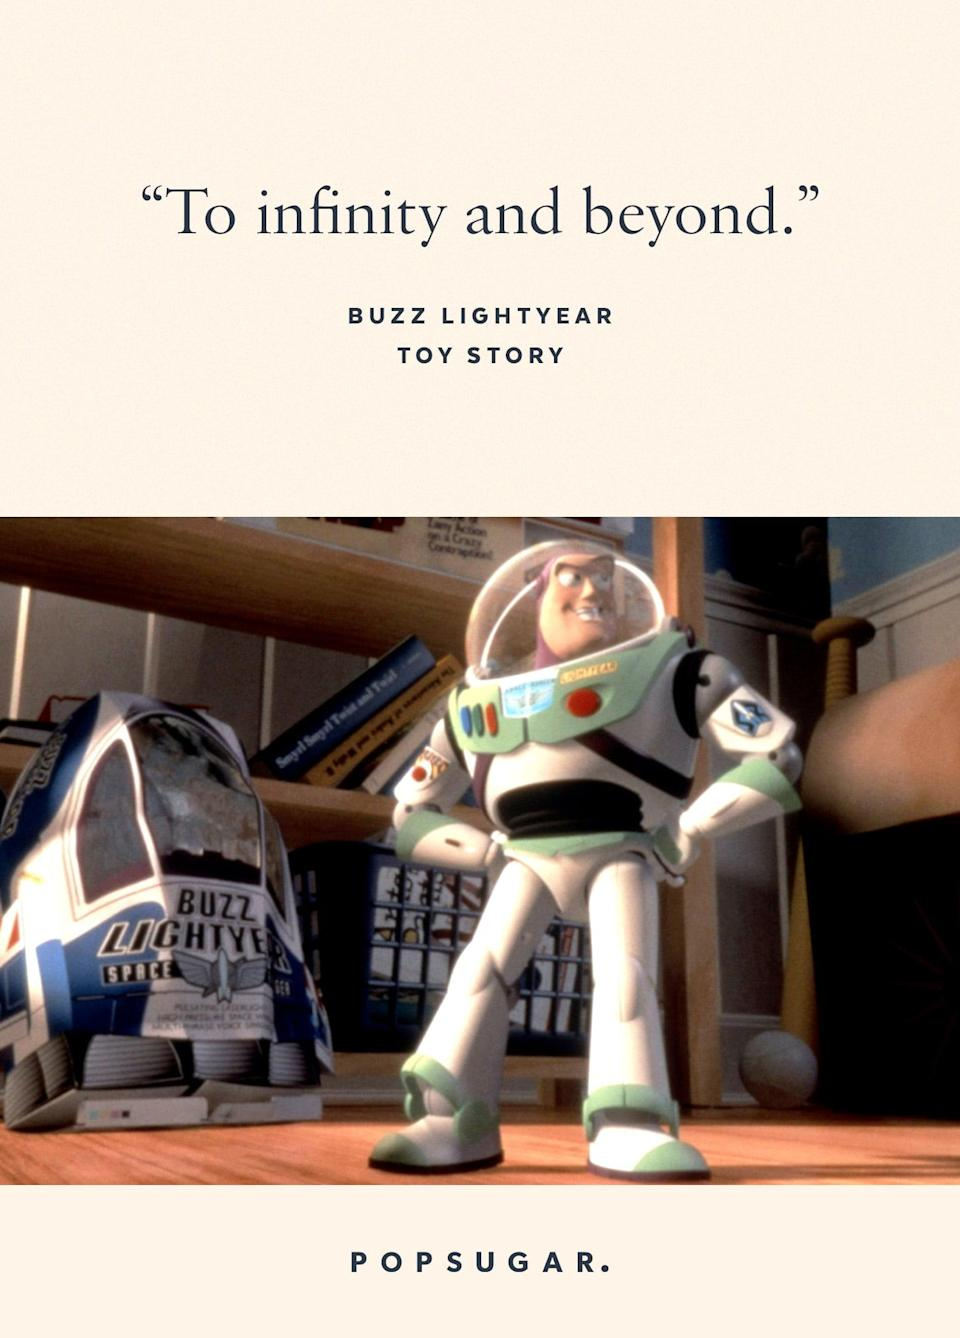 "<p>""To infinity and beyond."" - Buzz Lightyear, <b>Toy Story</b></p>"